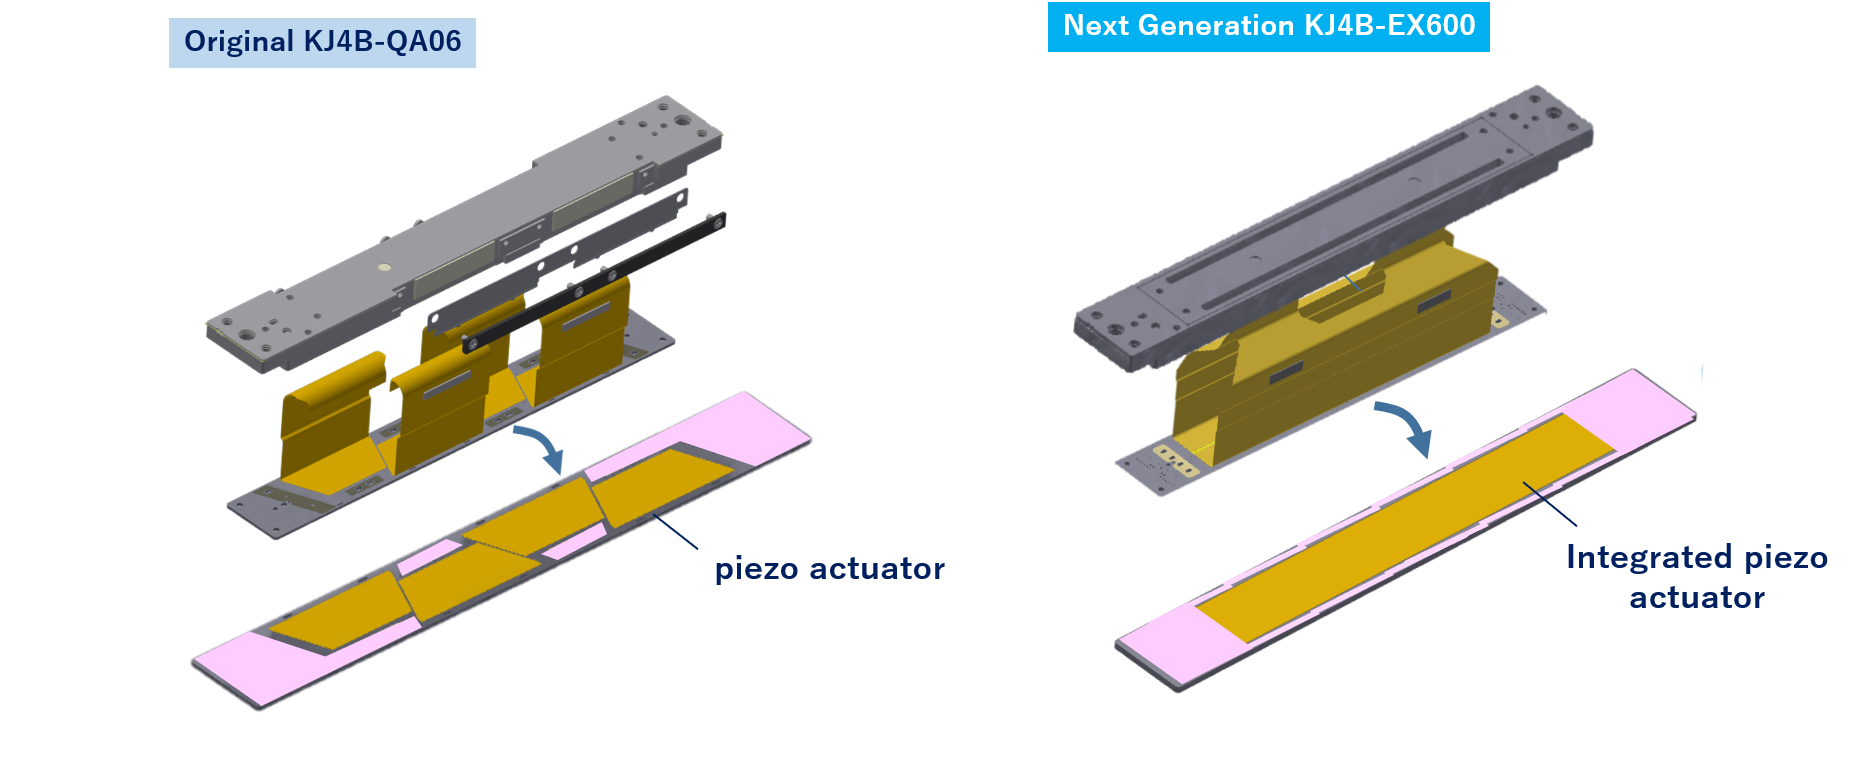 Kyocera_KJ4B-EX 600_Compared to Original KJ4B-QA06.png